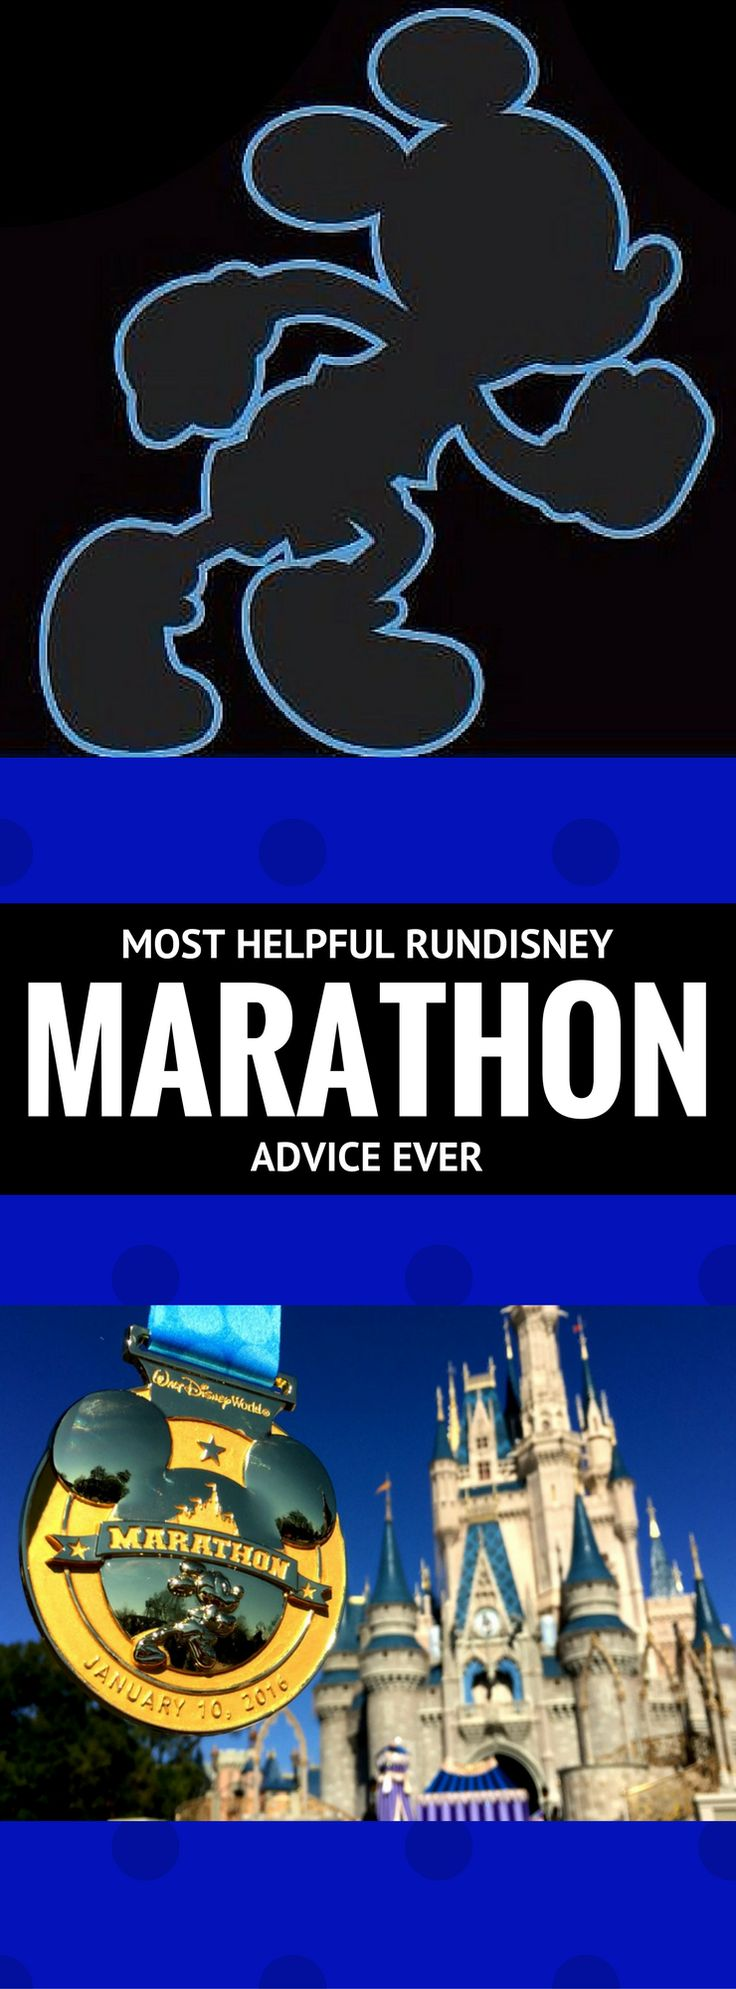 The most helpful runDisney Marathon advice ever! Running | Walt Disney World | Marathon | Marathon Weekend